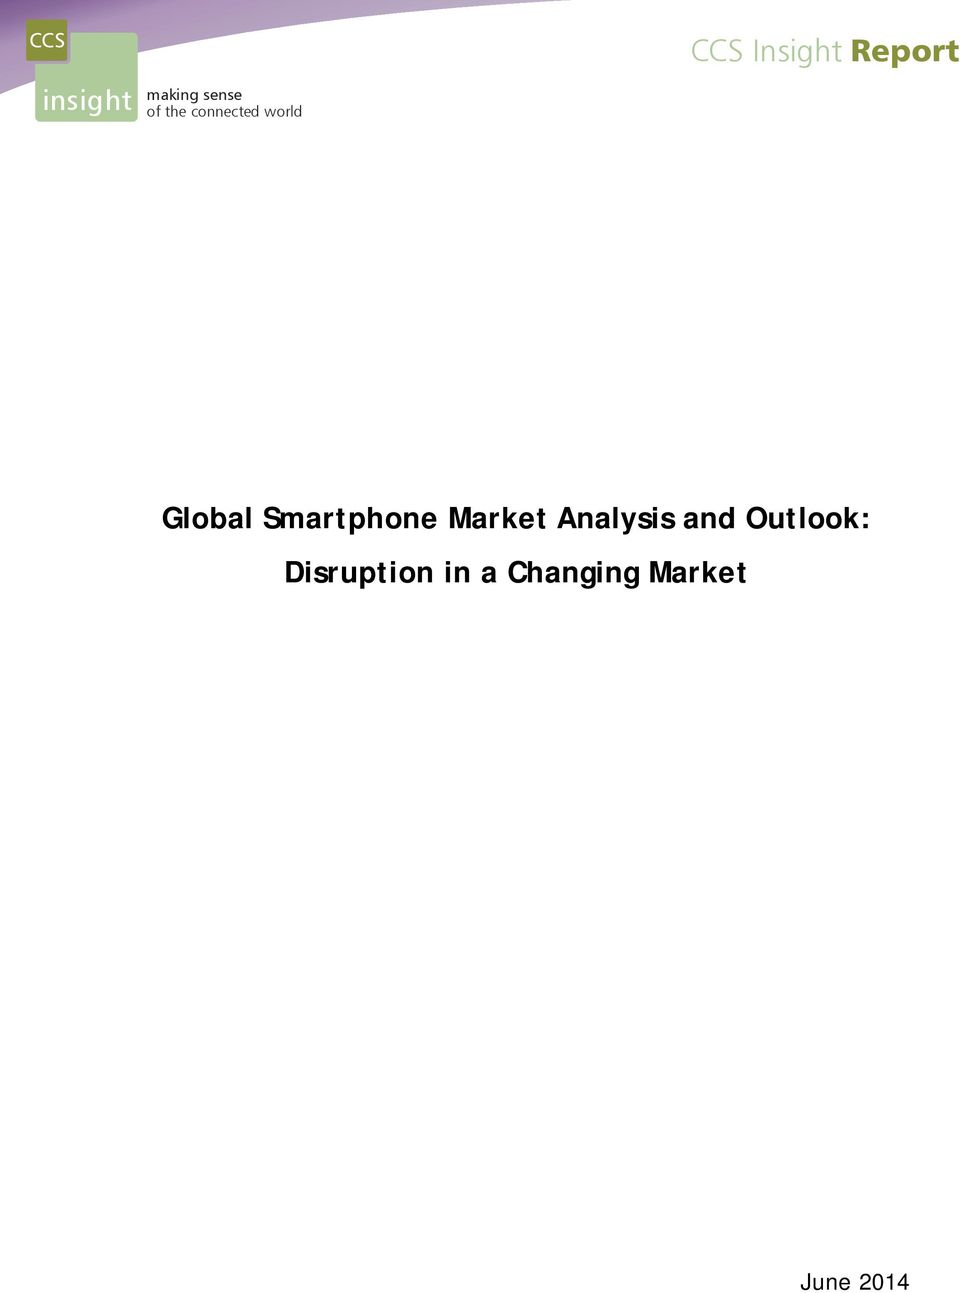 Global Smartphone Market Analysis and